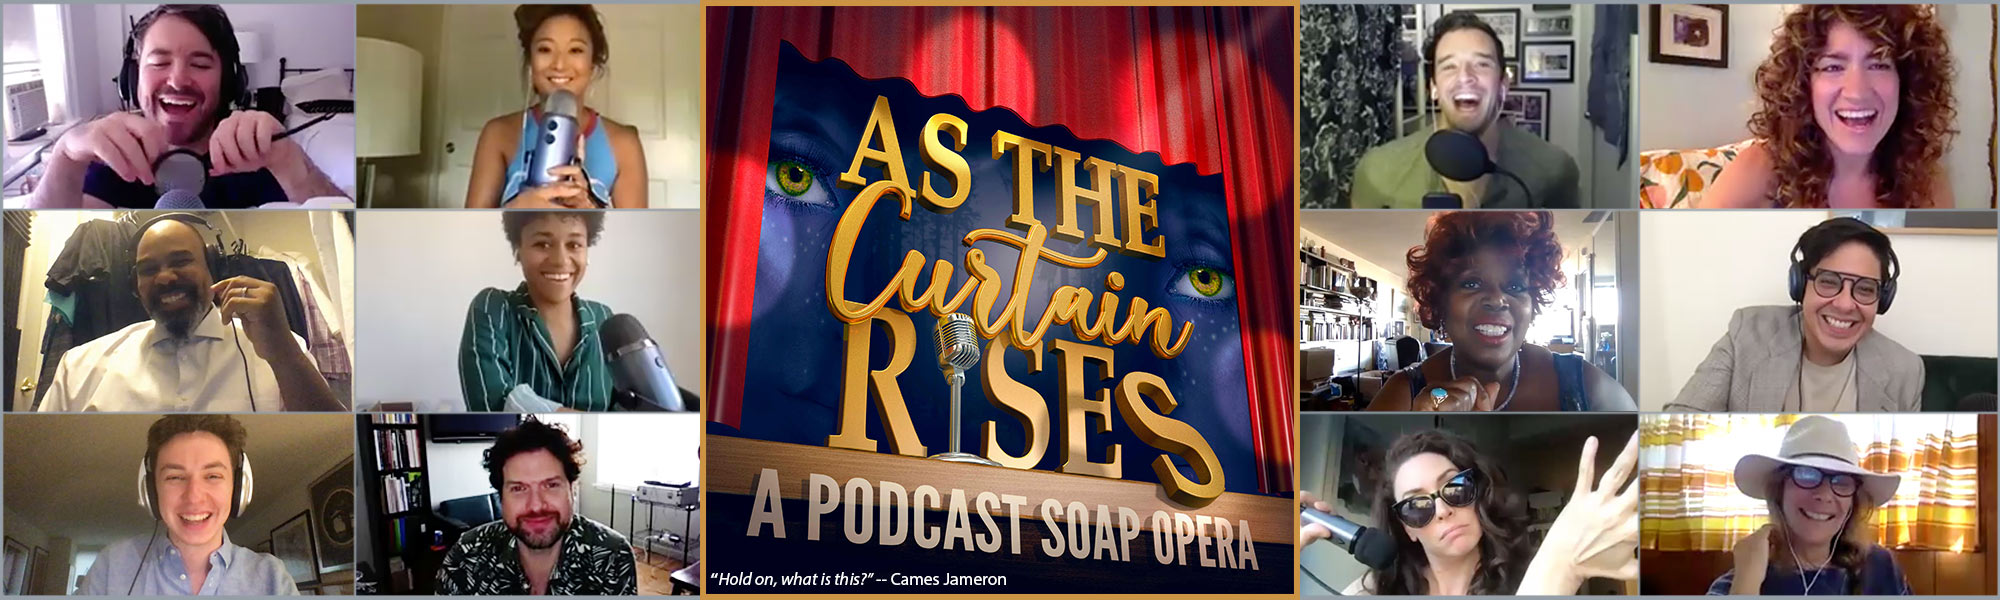 Listen to As the Curtain Rises, with Alex Brightman, Ashley Park, Andrew Barth Feldman, Arian DeBose, and so many more!